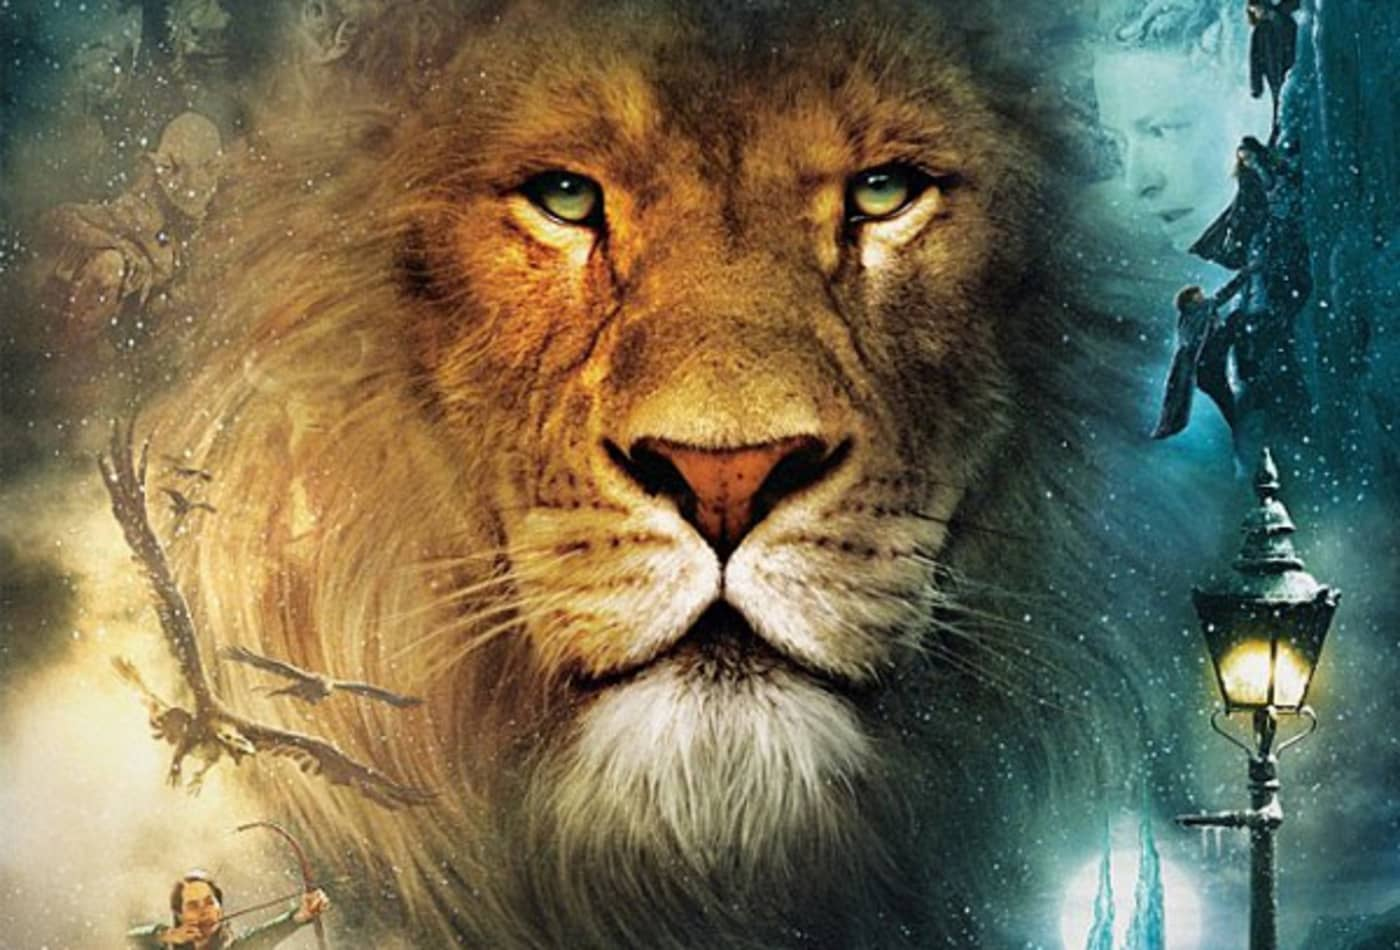 Chronicles-Of-Narnia-Highest-Grossing-Fantasy-Movies-CNBC.jpg